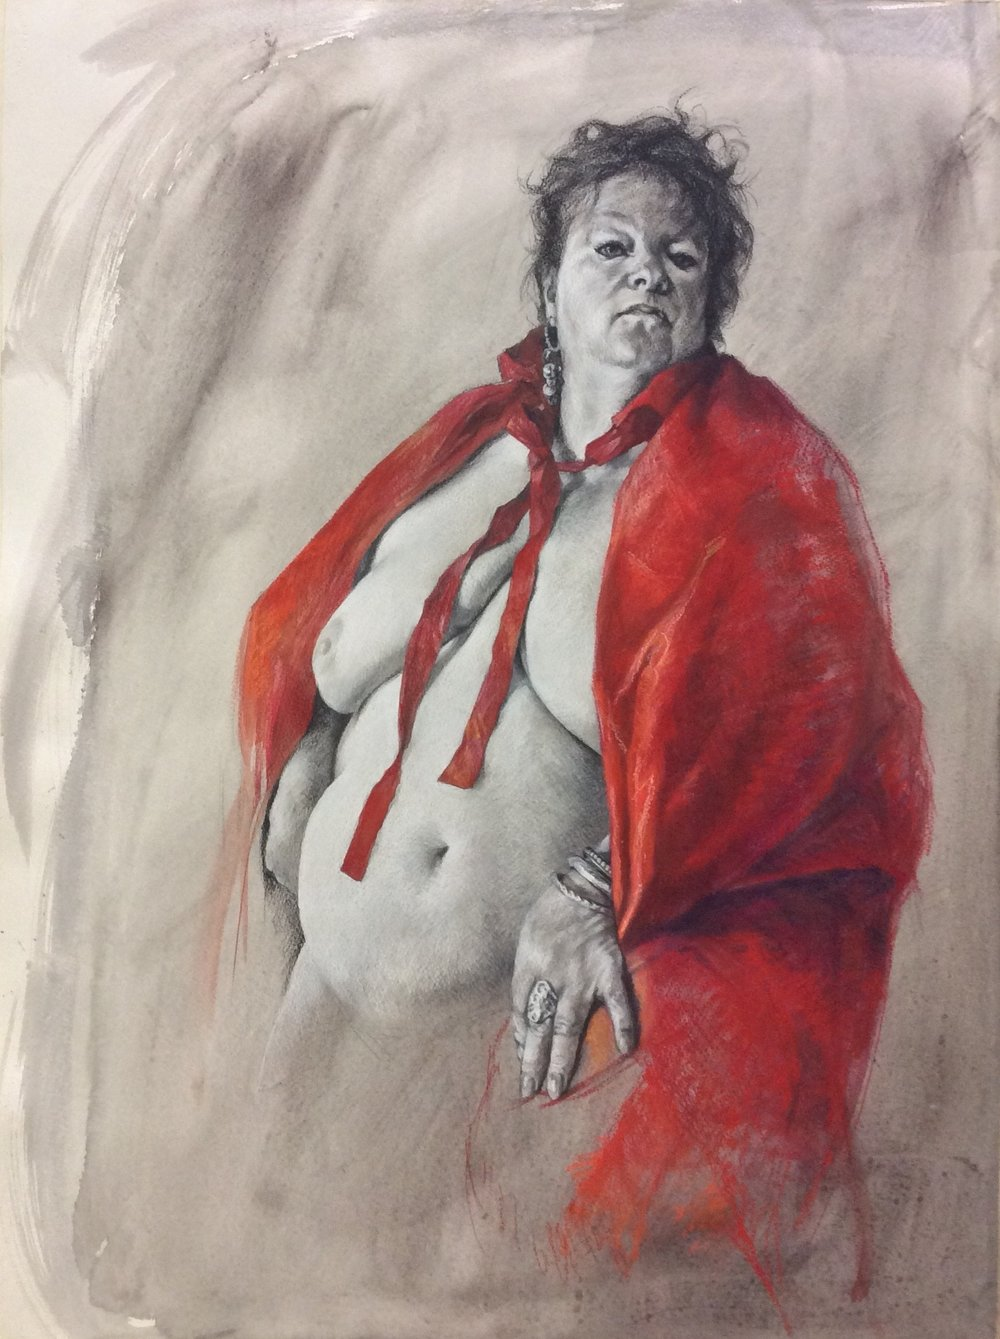 Jennifer Goddard, Bull fighter, Charcoal, pastel, watercolour on paper, height 76 cm x width 56 cm x .25 cm,  http://www.jgoddardartist.com